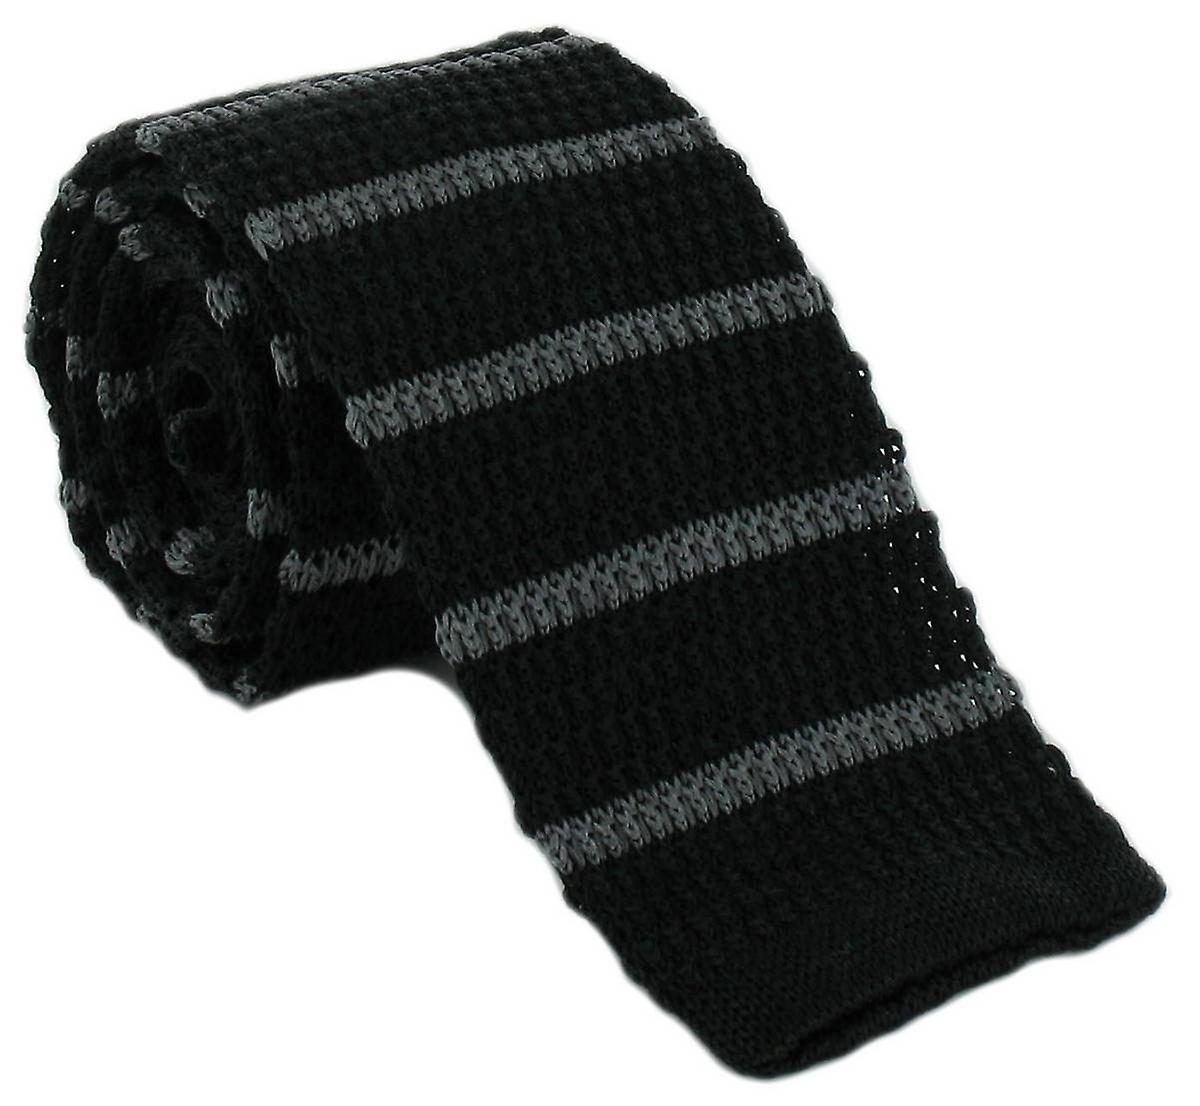 Michelsons of London Silk Knitted Striped Skinny Tie - Black/Charcoal